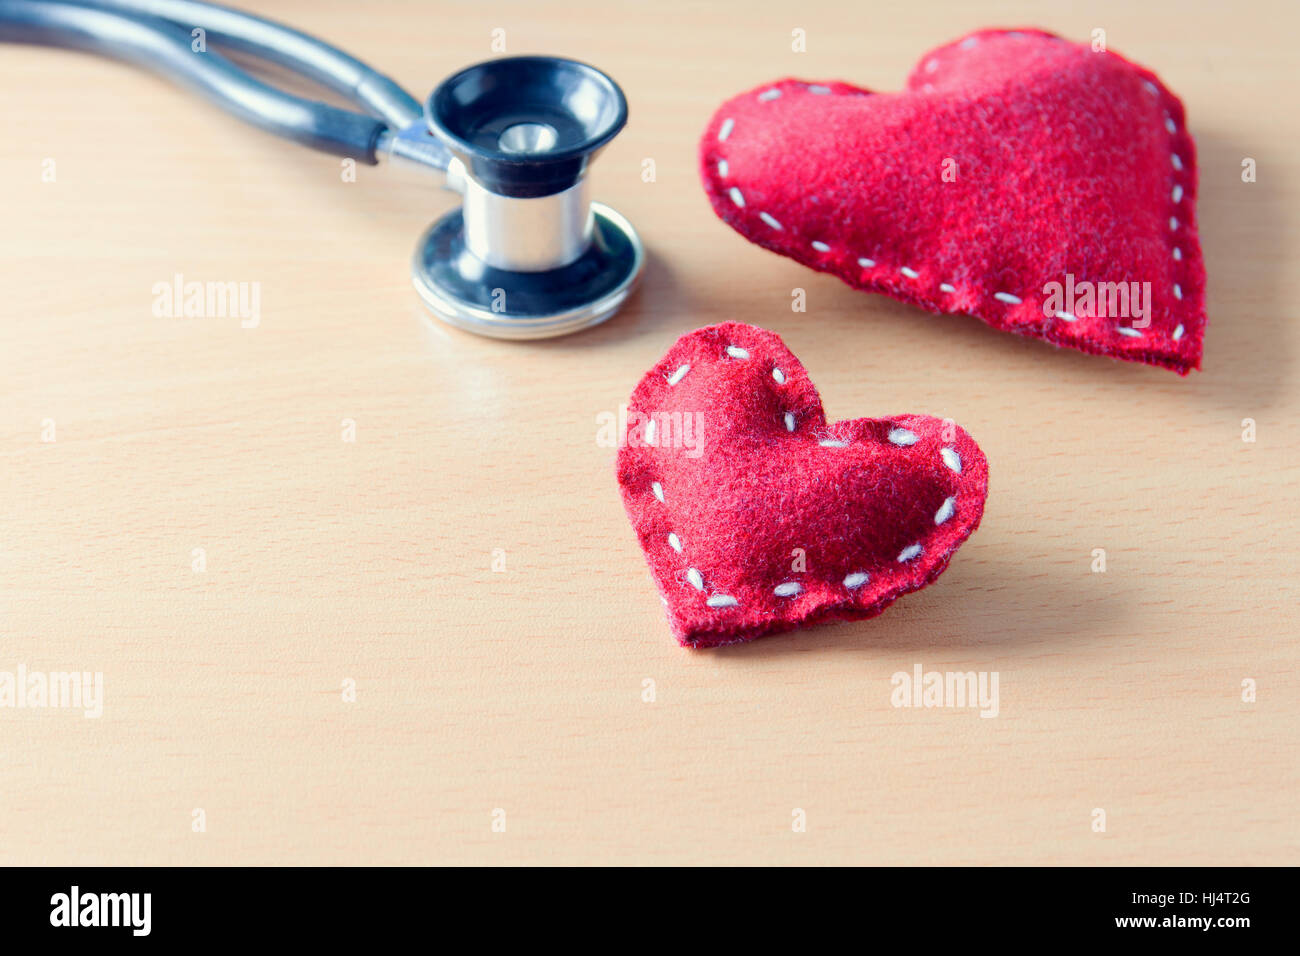 Fabric red heart and stethoscope on wooden table - state on mind, mood or health condition concept, tint image Stock Photo